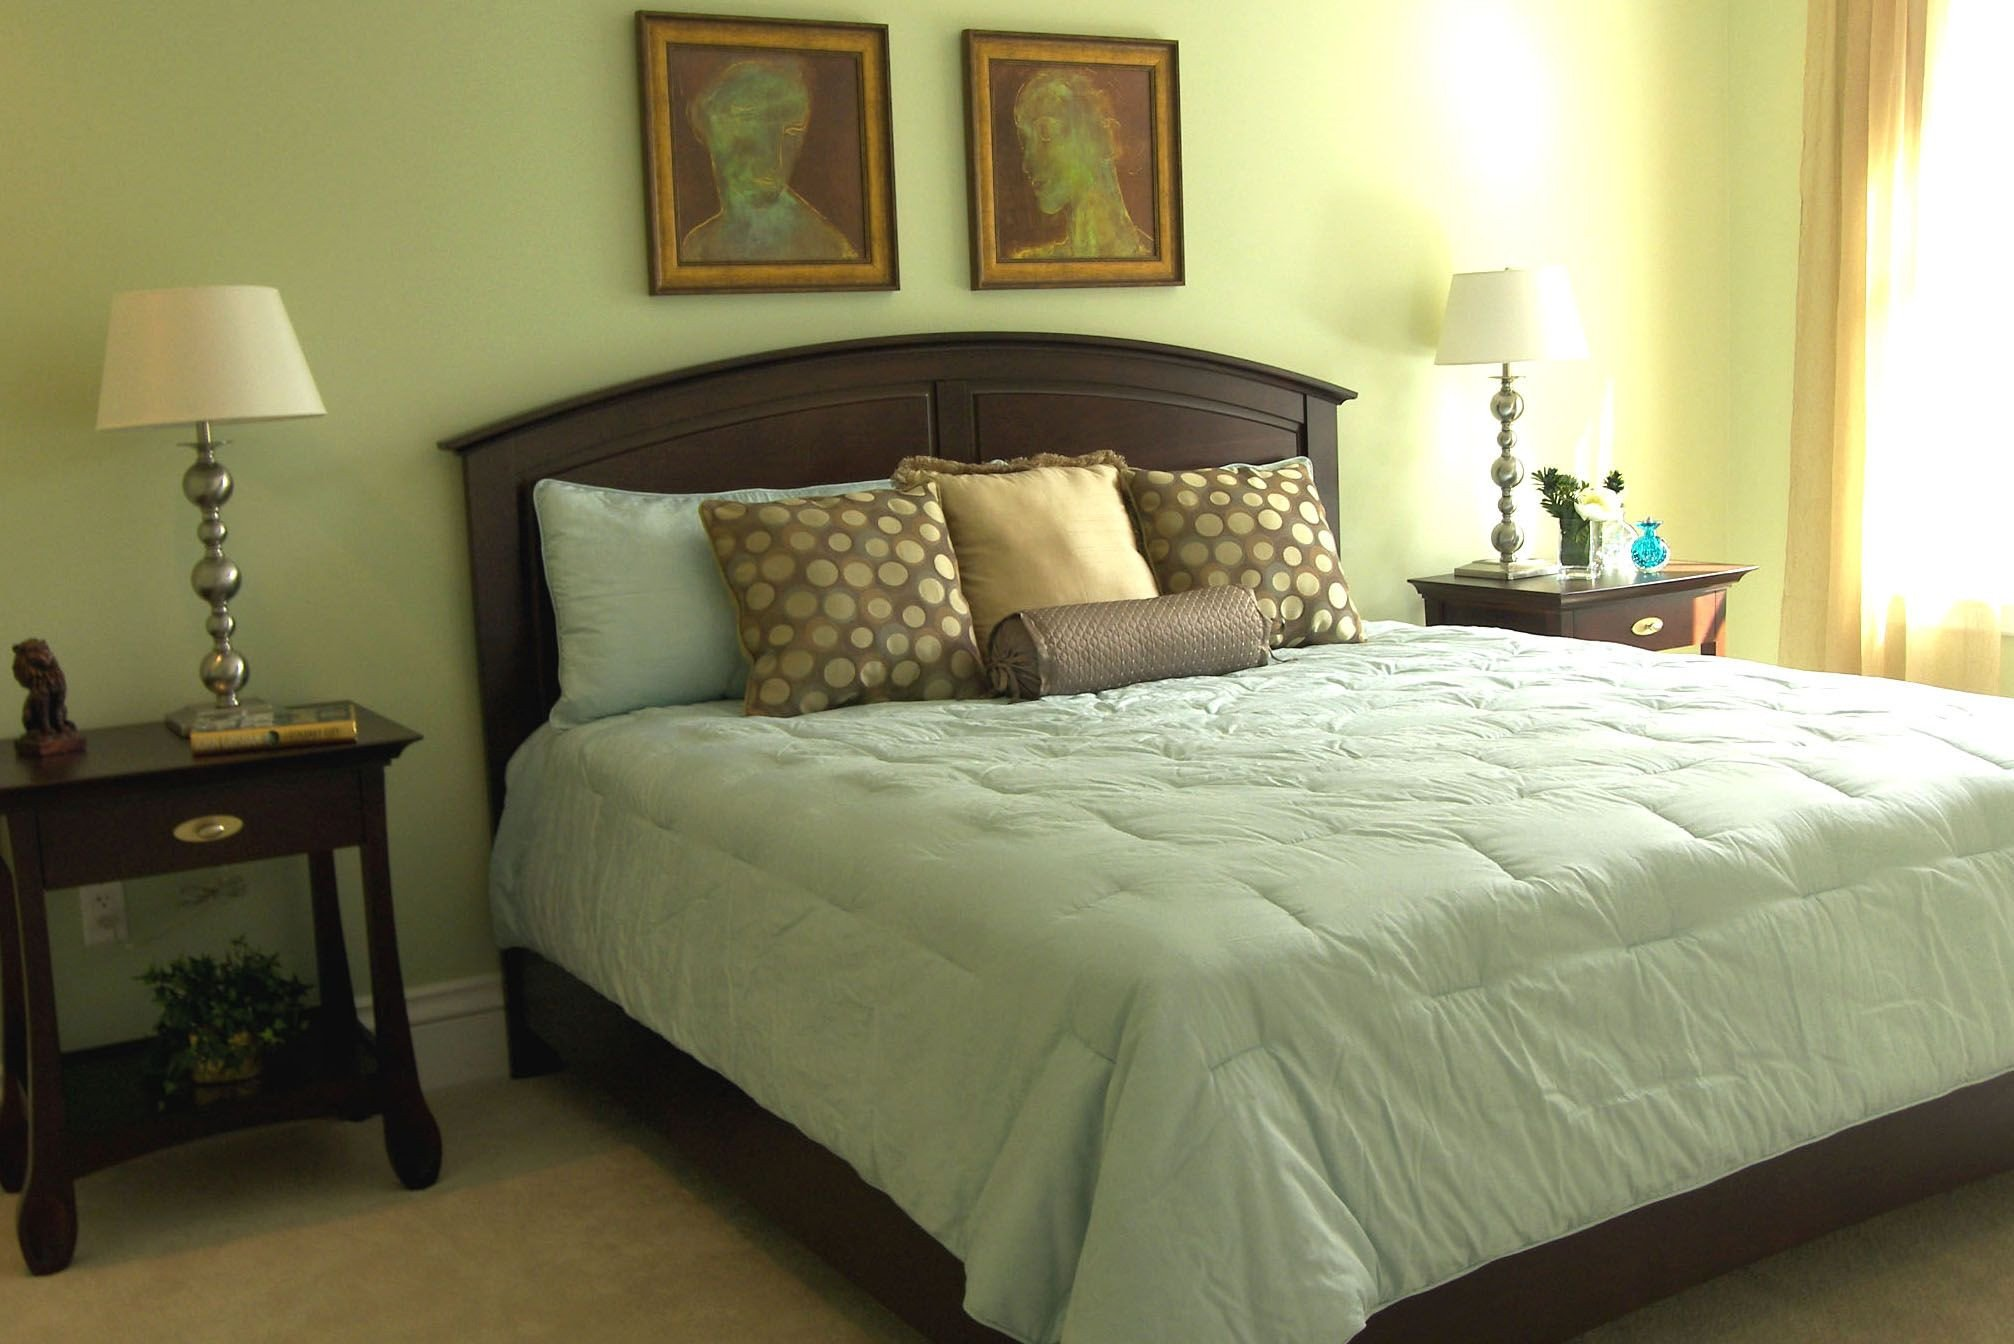 Black and Brown Bedroom Awesome Brown Bedroom Green Bedding the Move Interiors